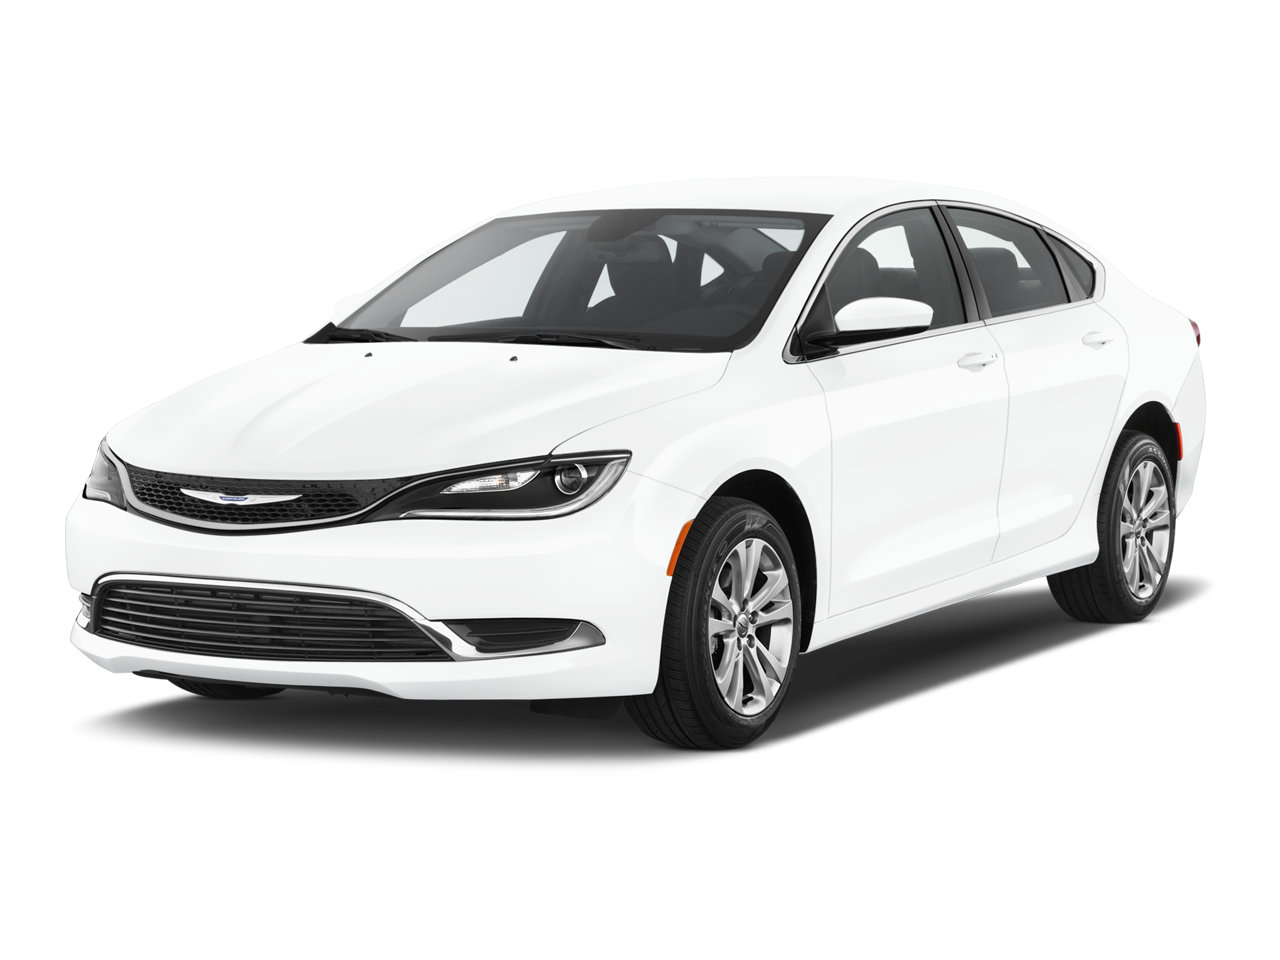 used 2015 chrysler 200 limited near tulsa ok joe. Cars Review. Best American Auto & Cars Review